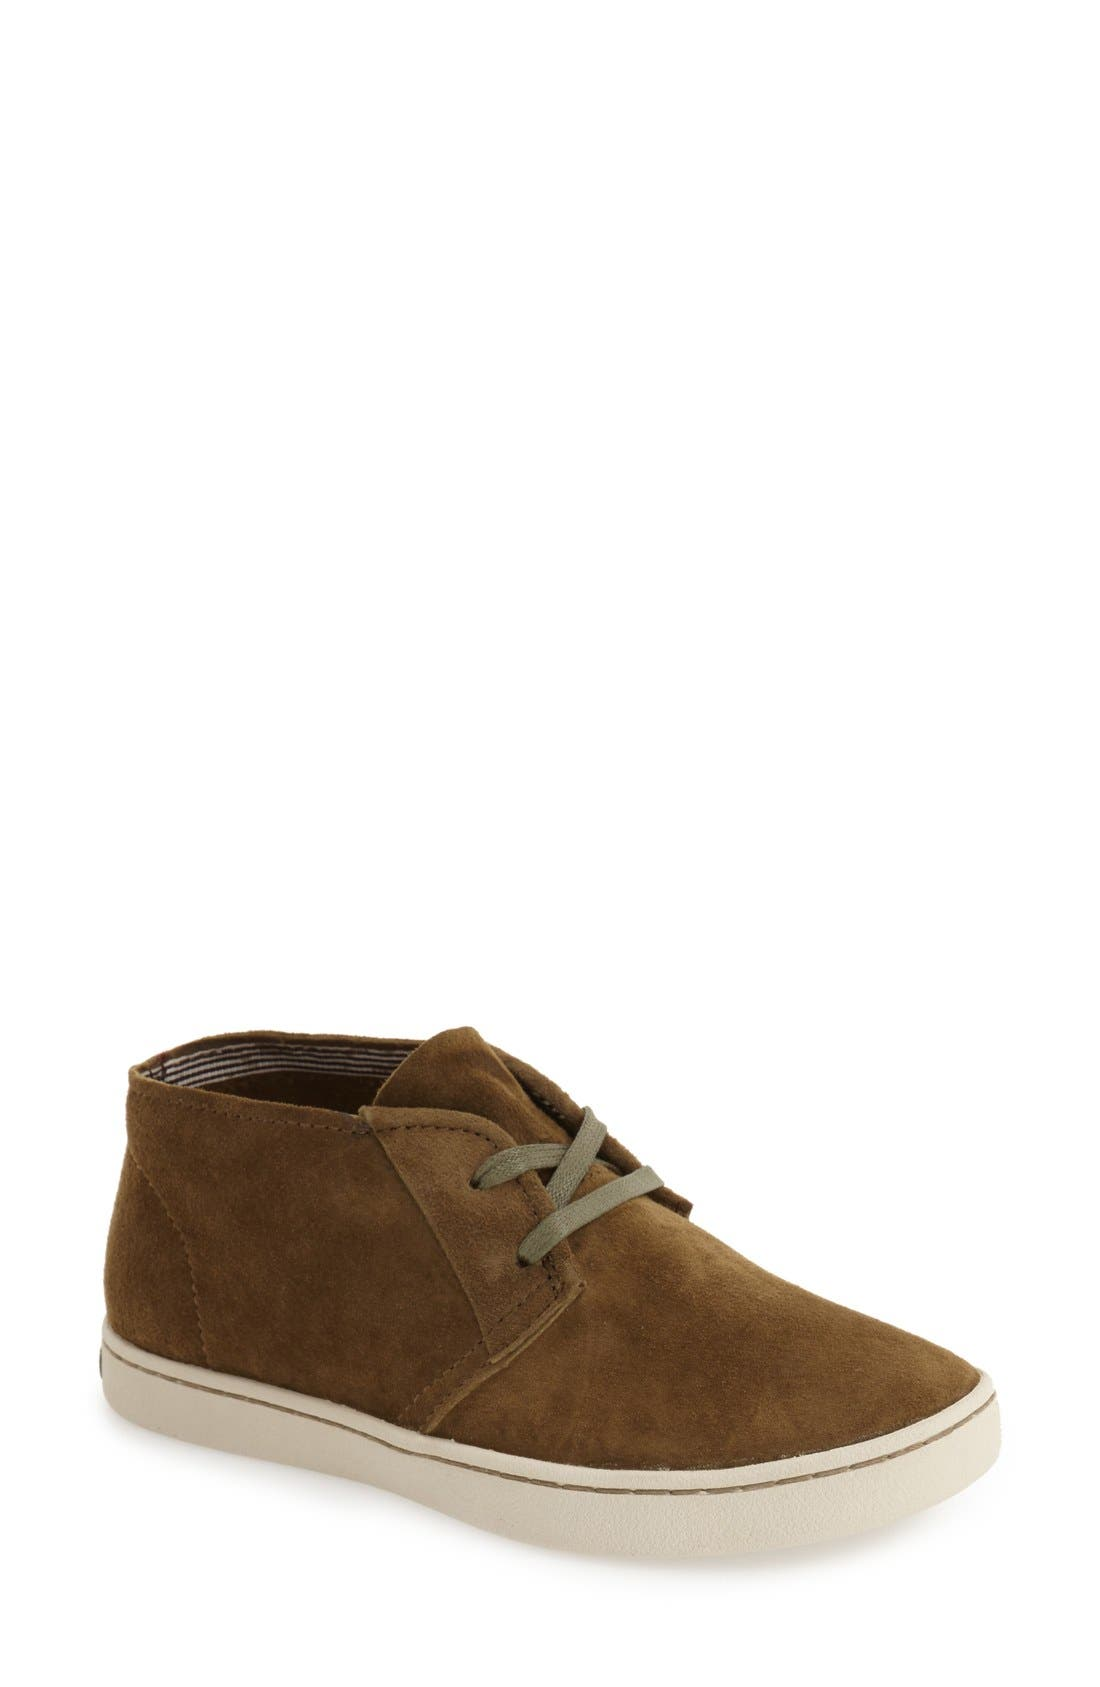 Main Image - Hush Puppies® 'Cille Gwen' Sneaker (Women)